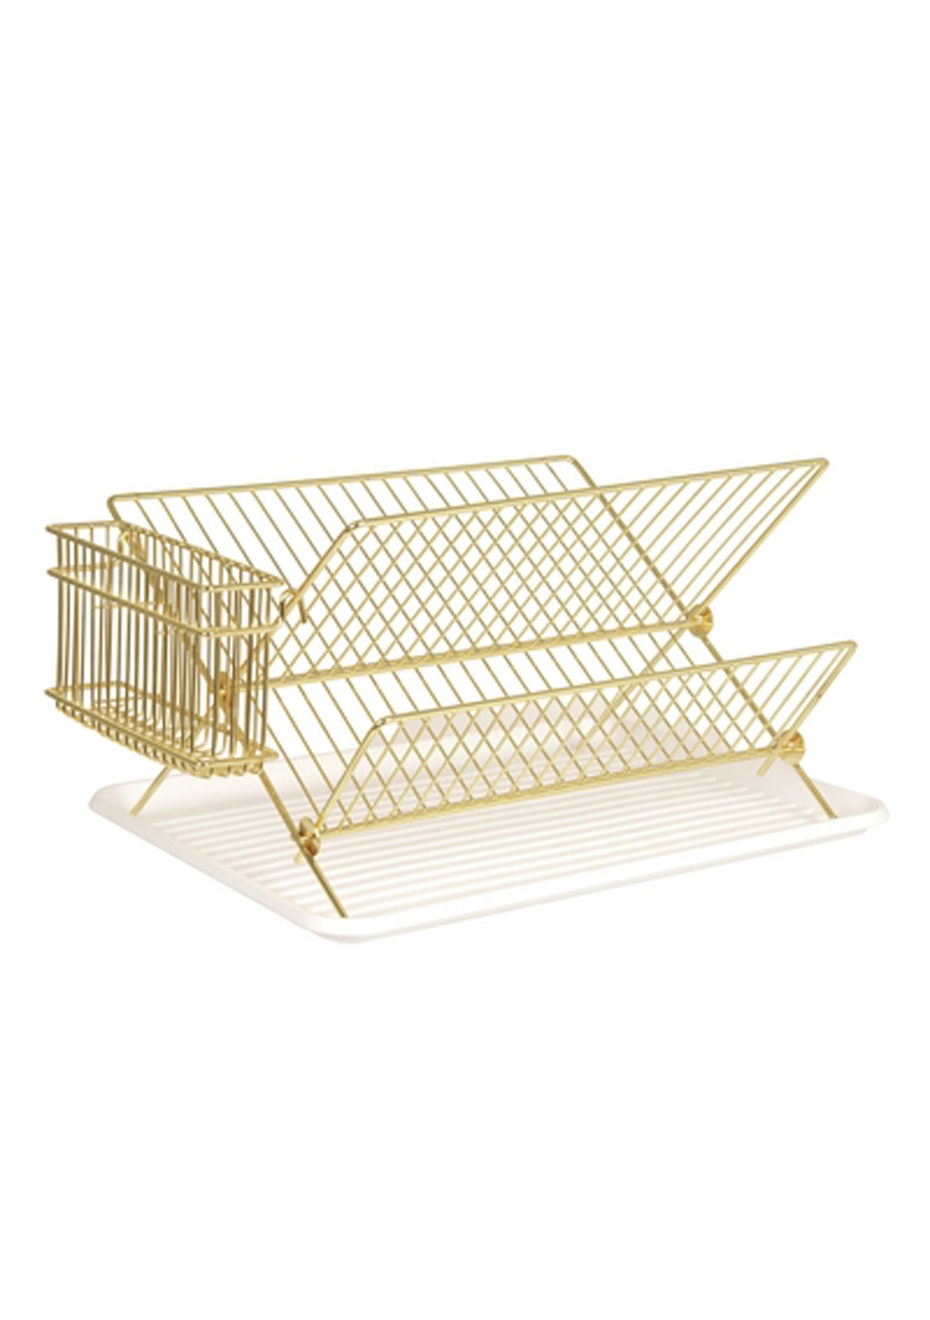 Pt Home - Dish Rack - Gold